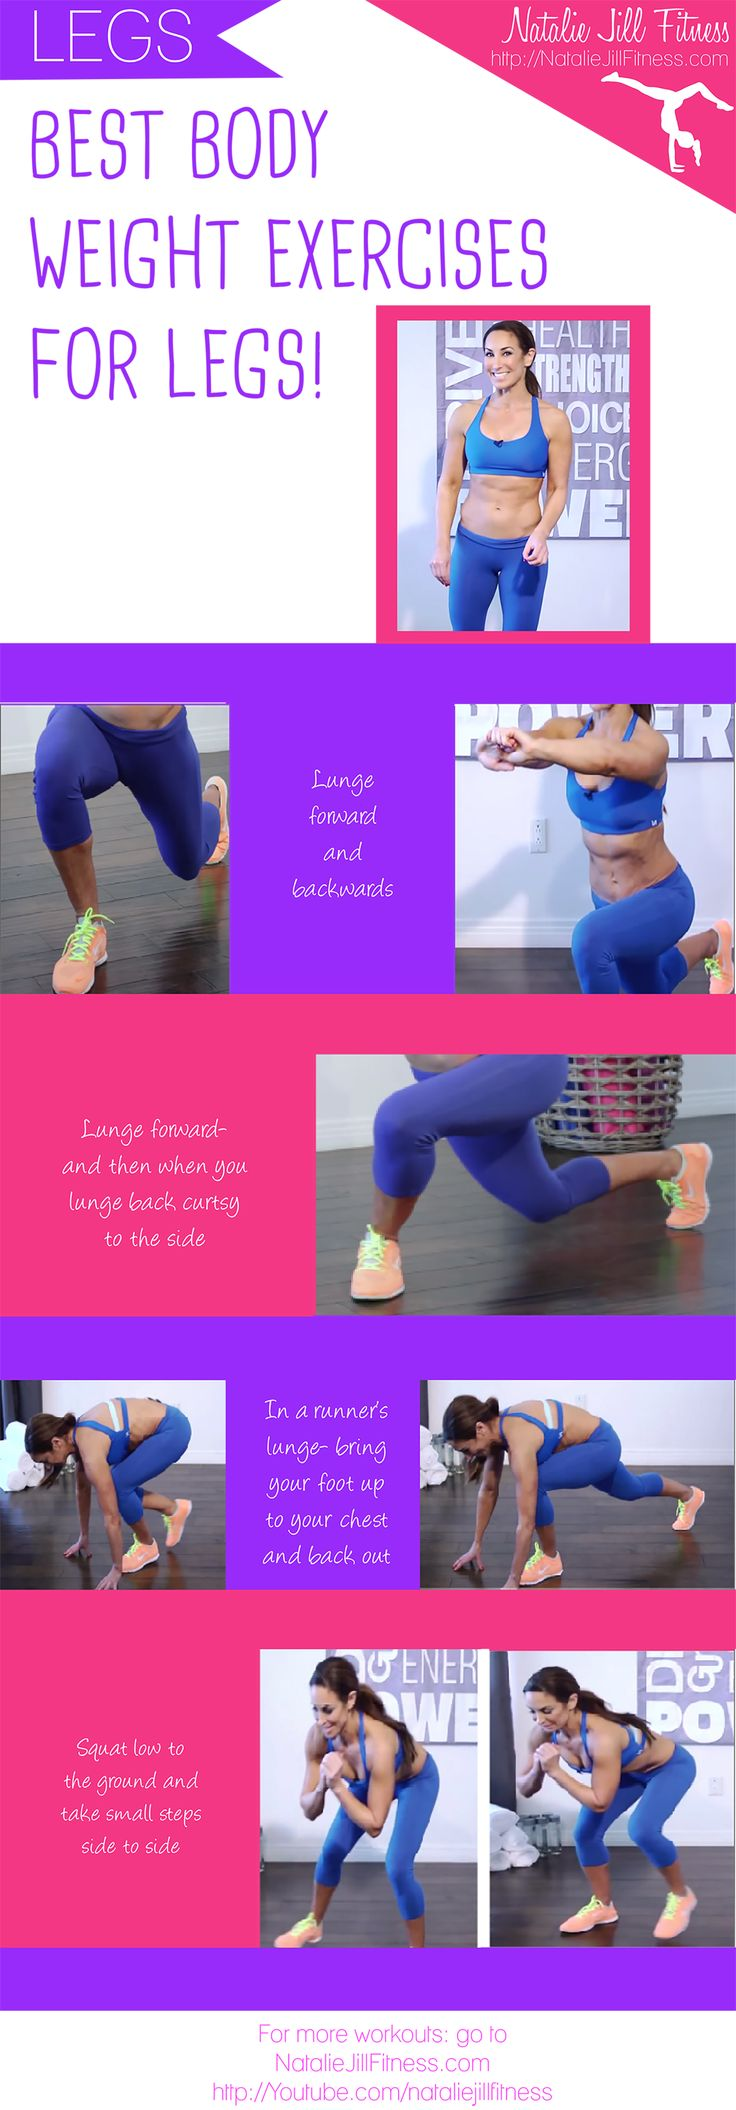 Best body weight exercises for legs! Let's go! Click the image to watch the full video